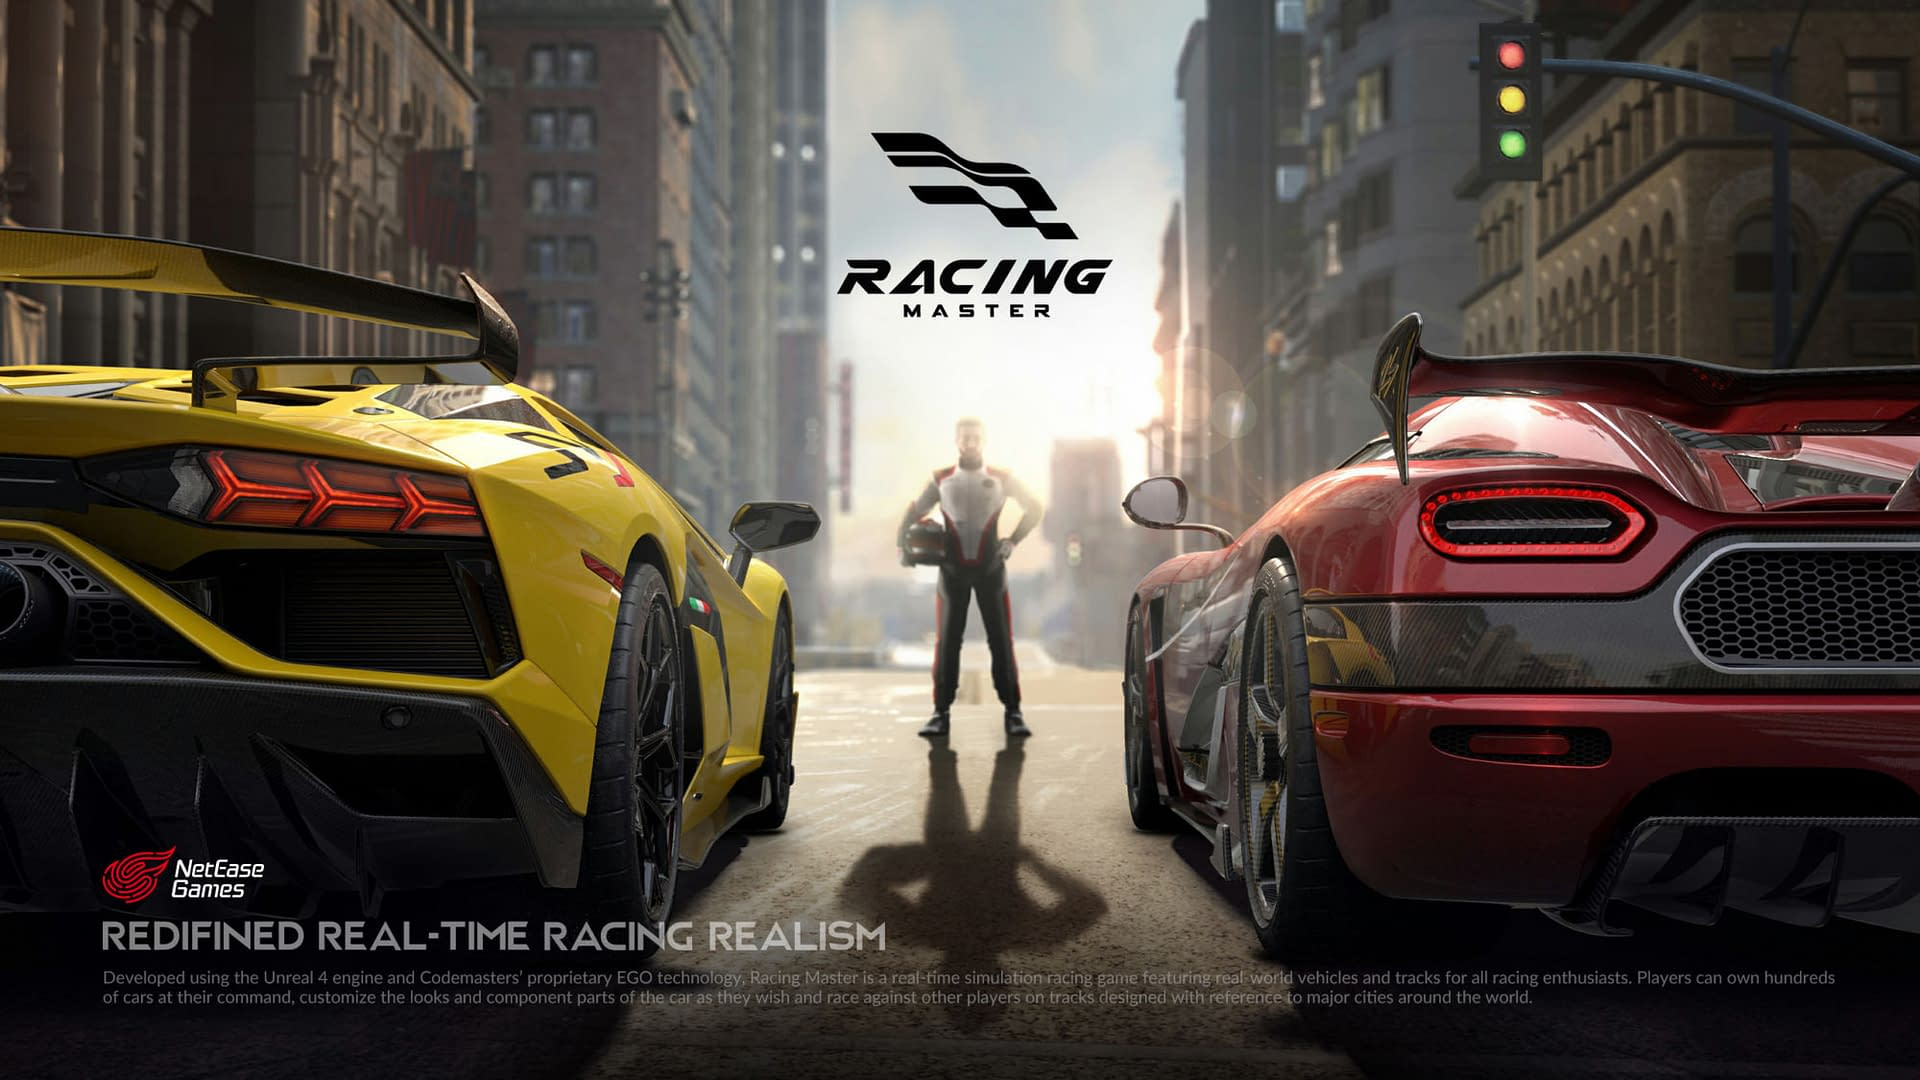 NetEase Games & Codemasters Officially Announce Racing Master